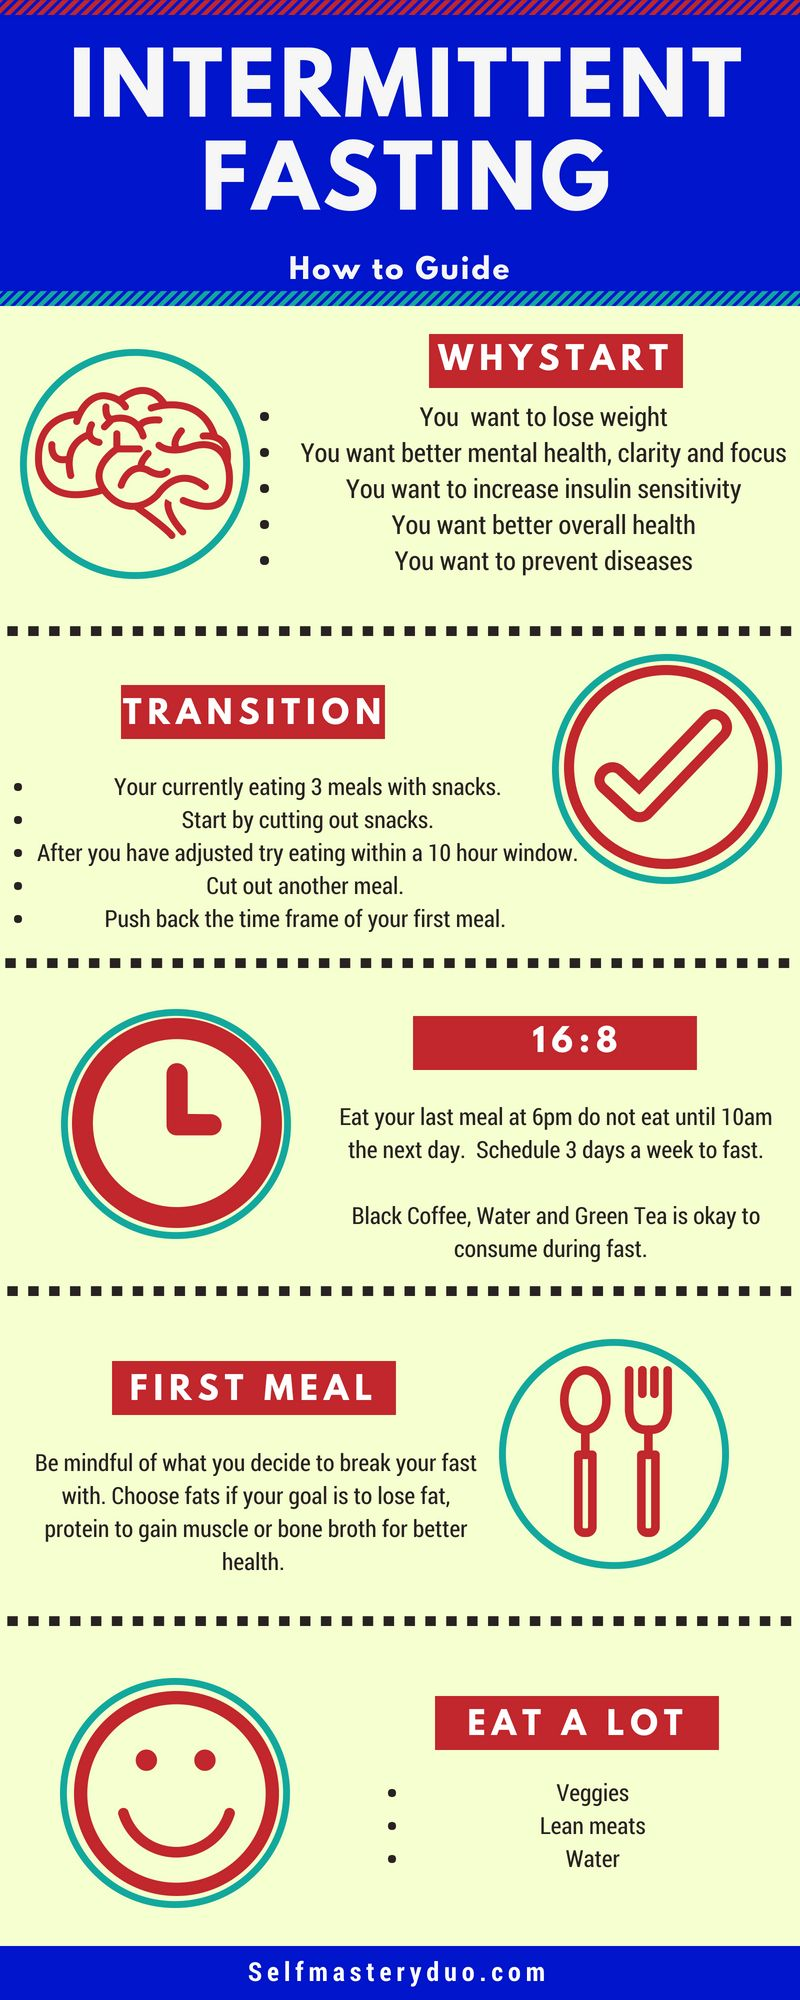 How to Intermittent Fasting